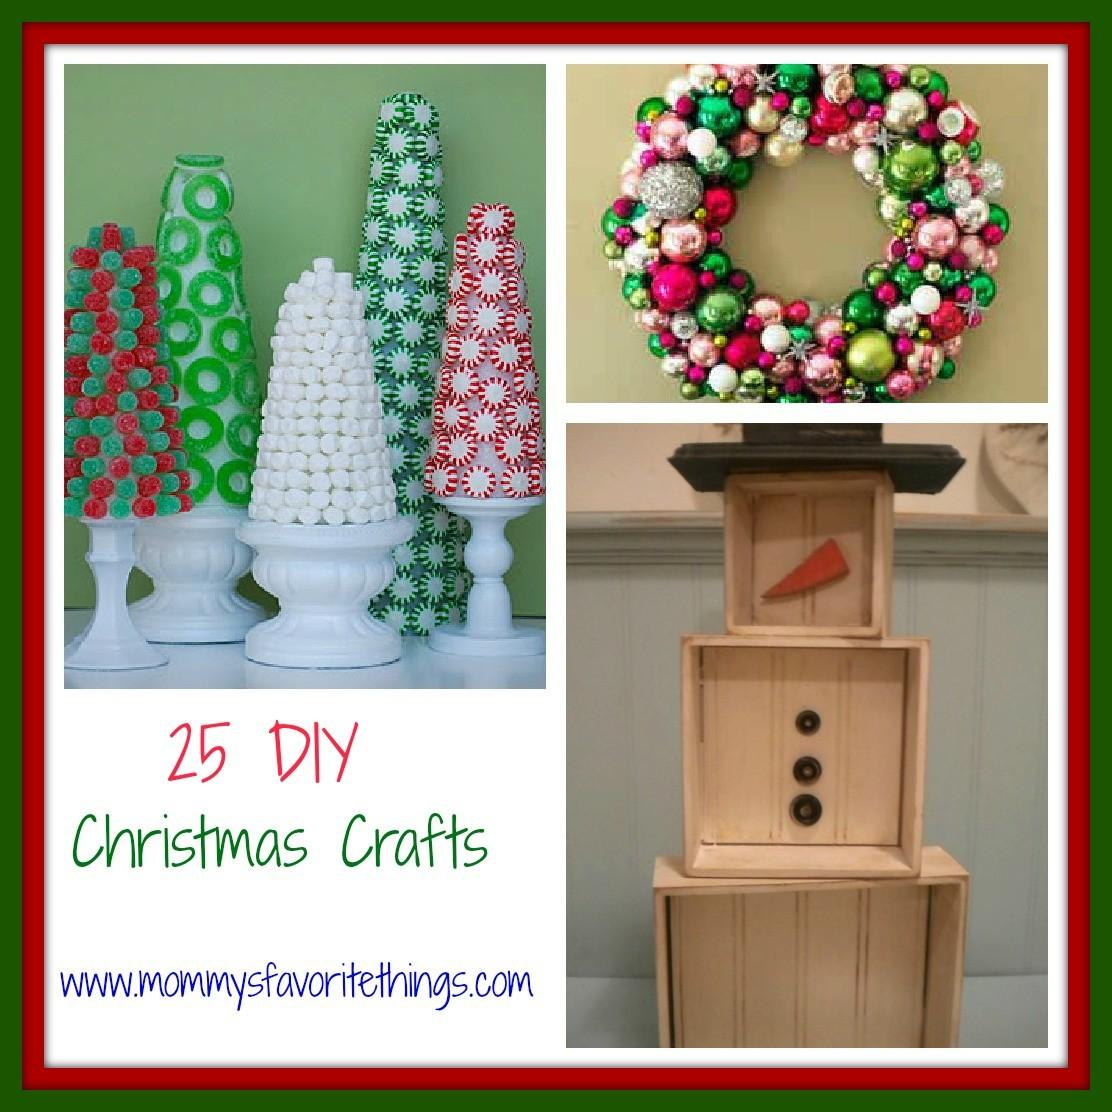 Mommy Favorite Things Diy Christmas Crafts